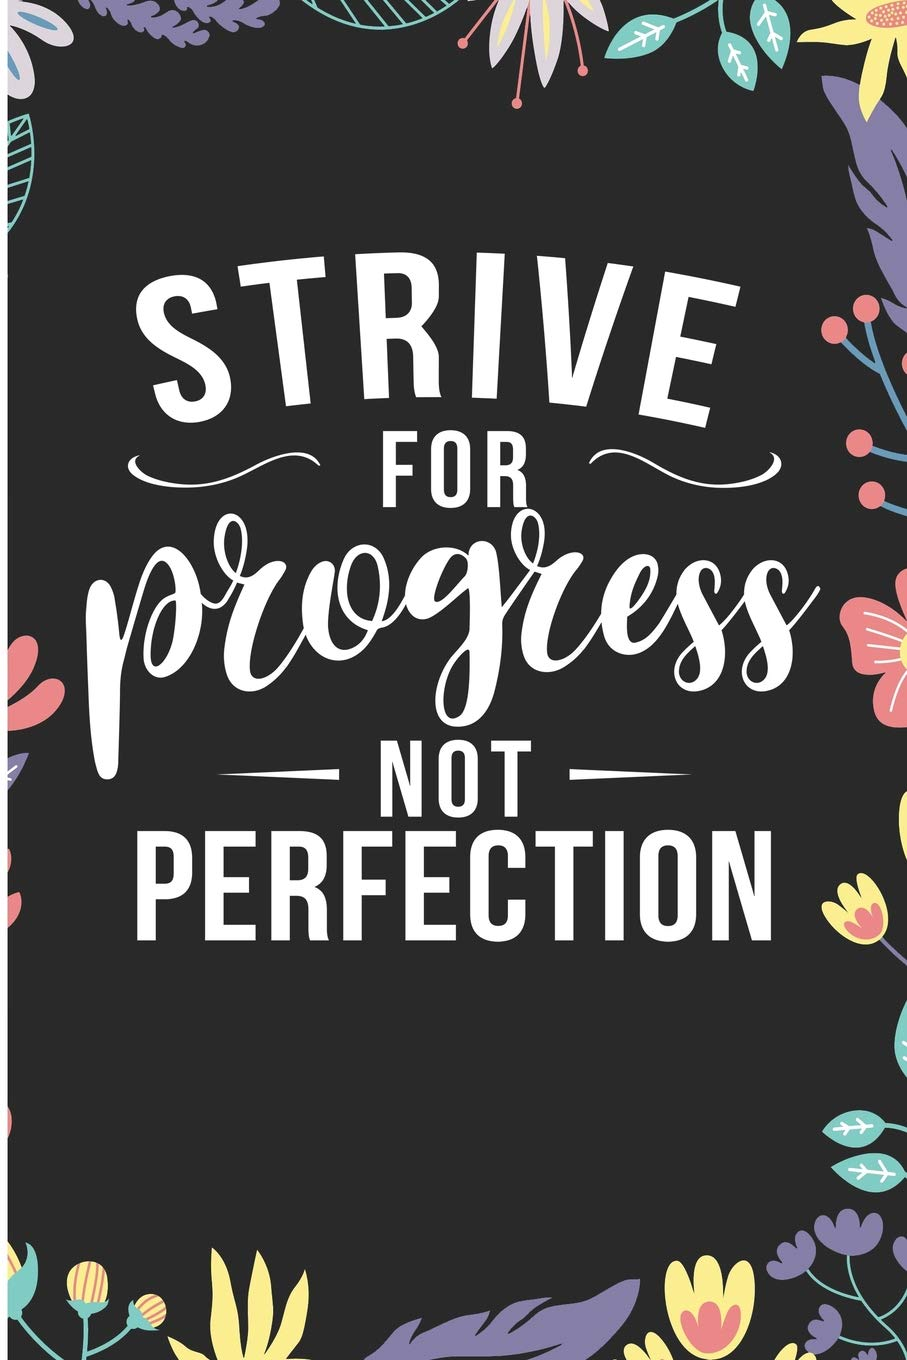 Strive For Progress Not Perfection: Motivational Uplifting Quotes ...